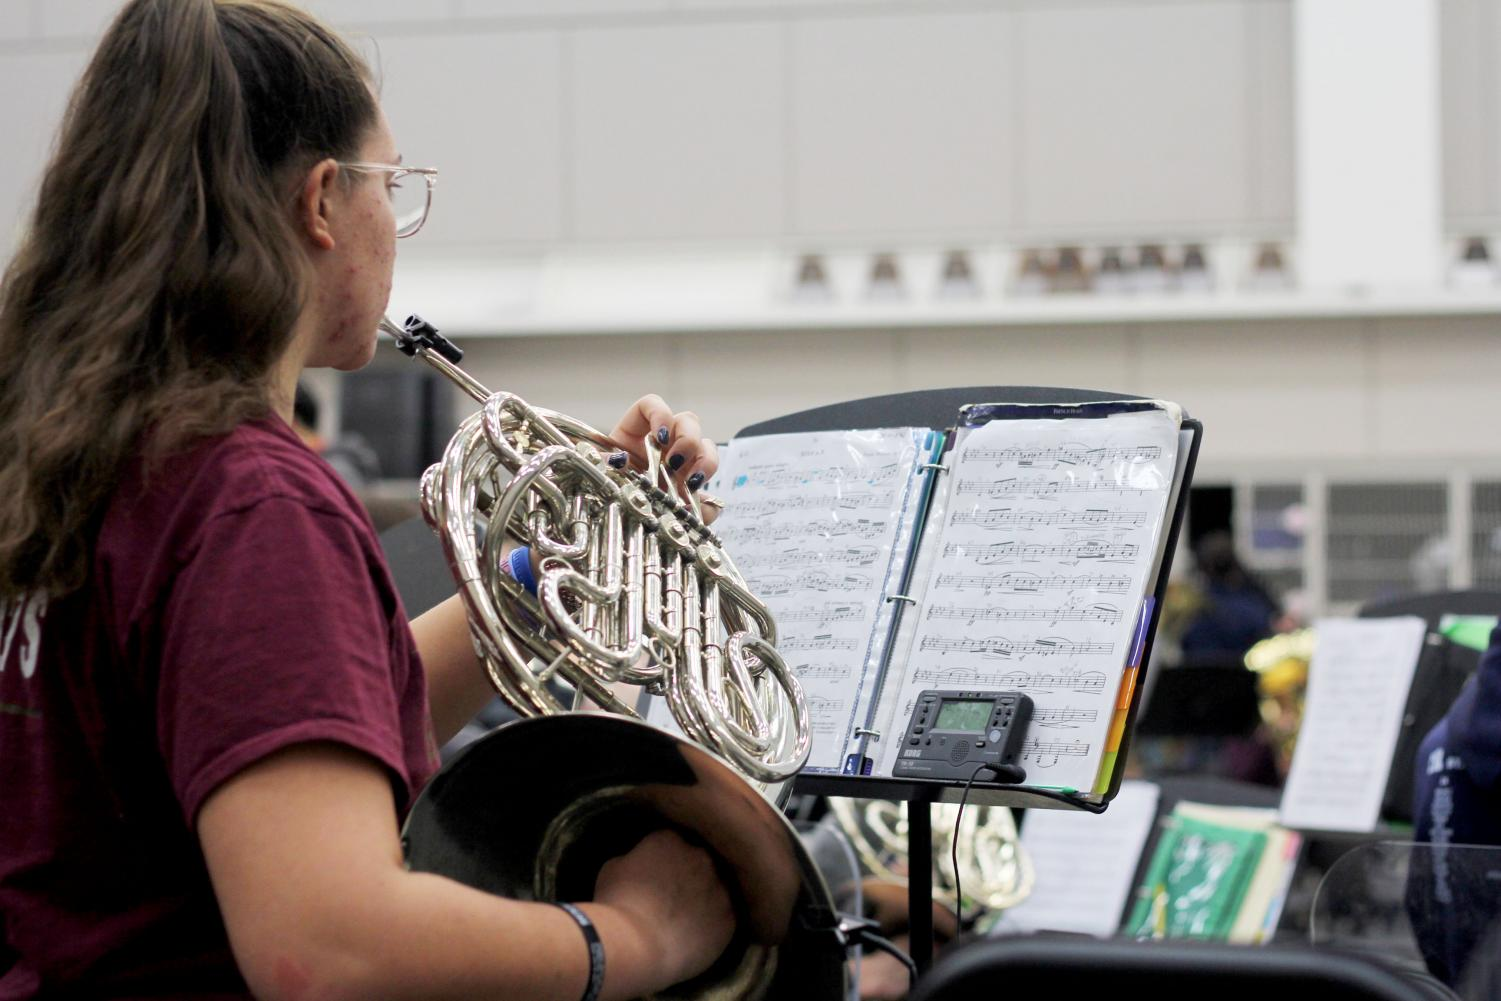 Senior Paige Heffler practices for the TMEA All-Region concert. The annual TMEA All-region concert is on Jan. 17 and 18.